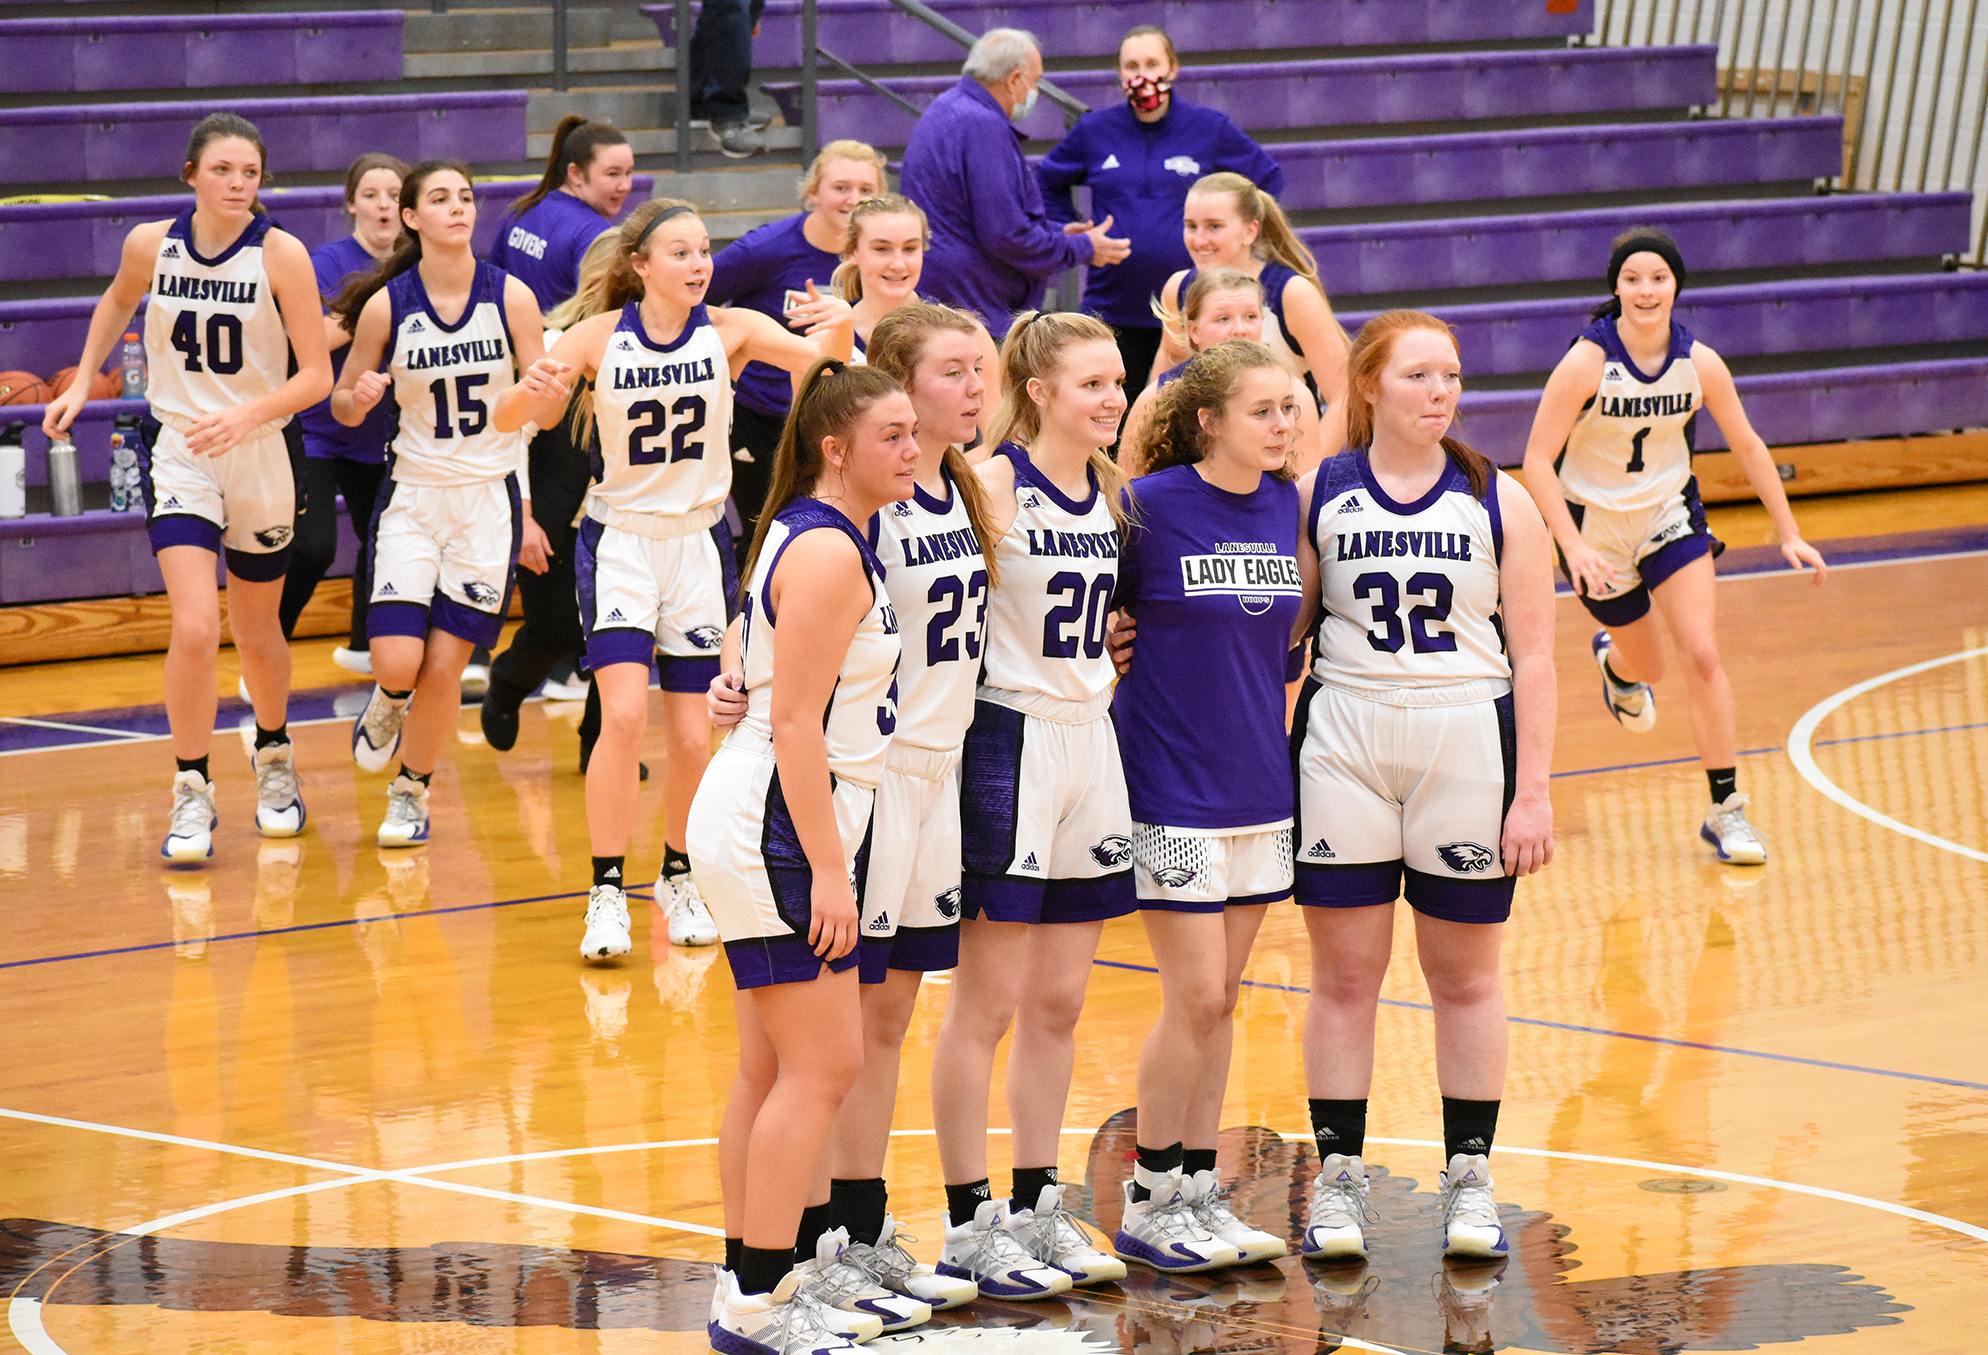 Lady Eagles finish strong over Scottsburg